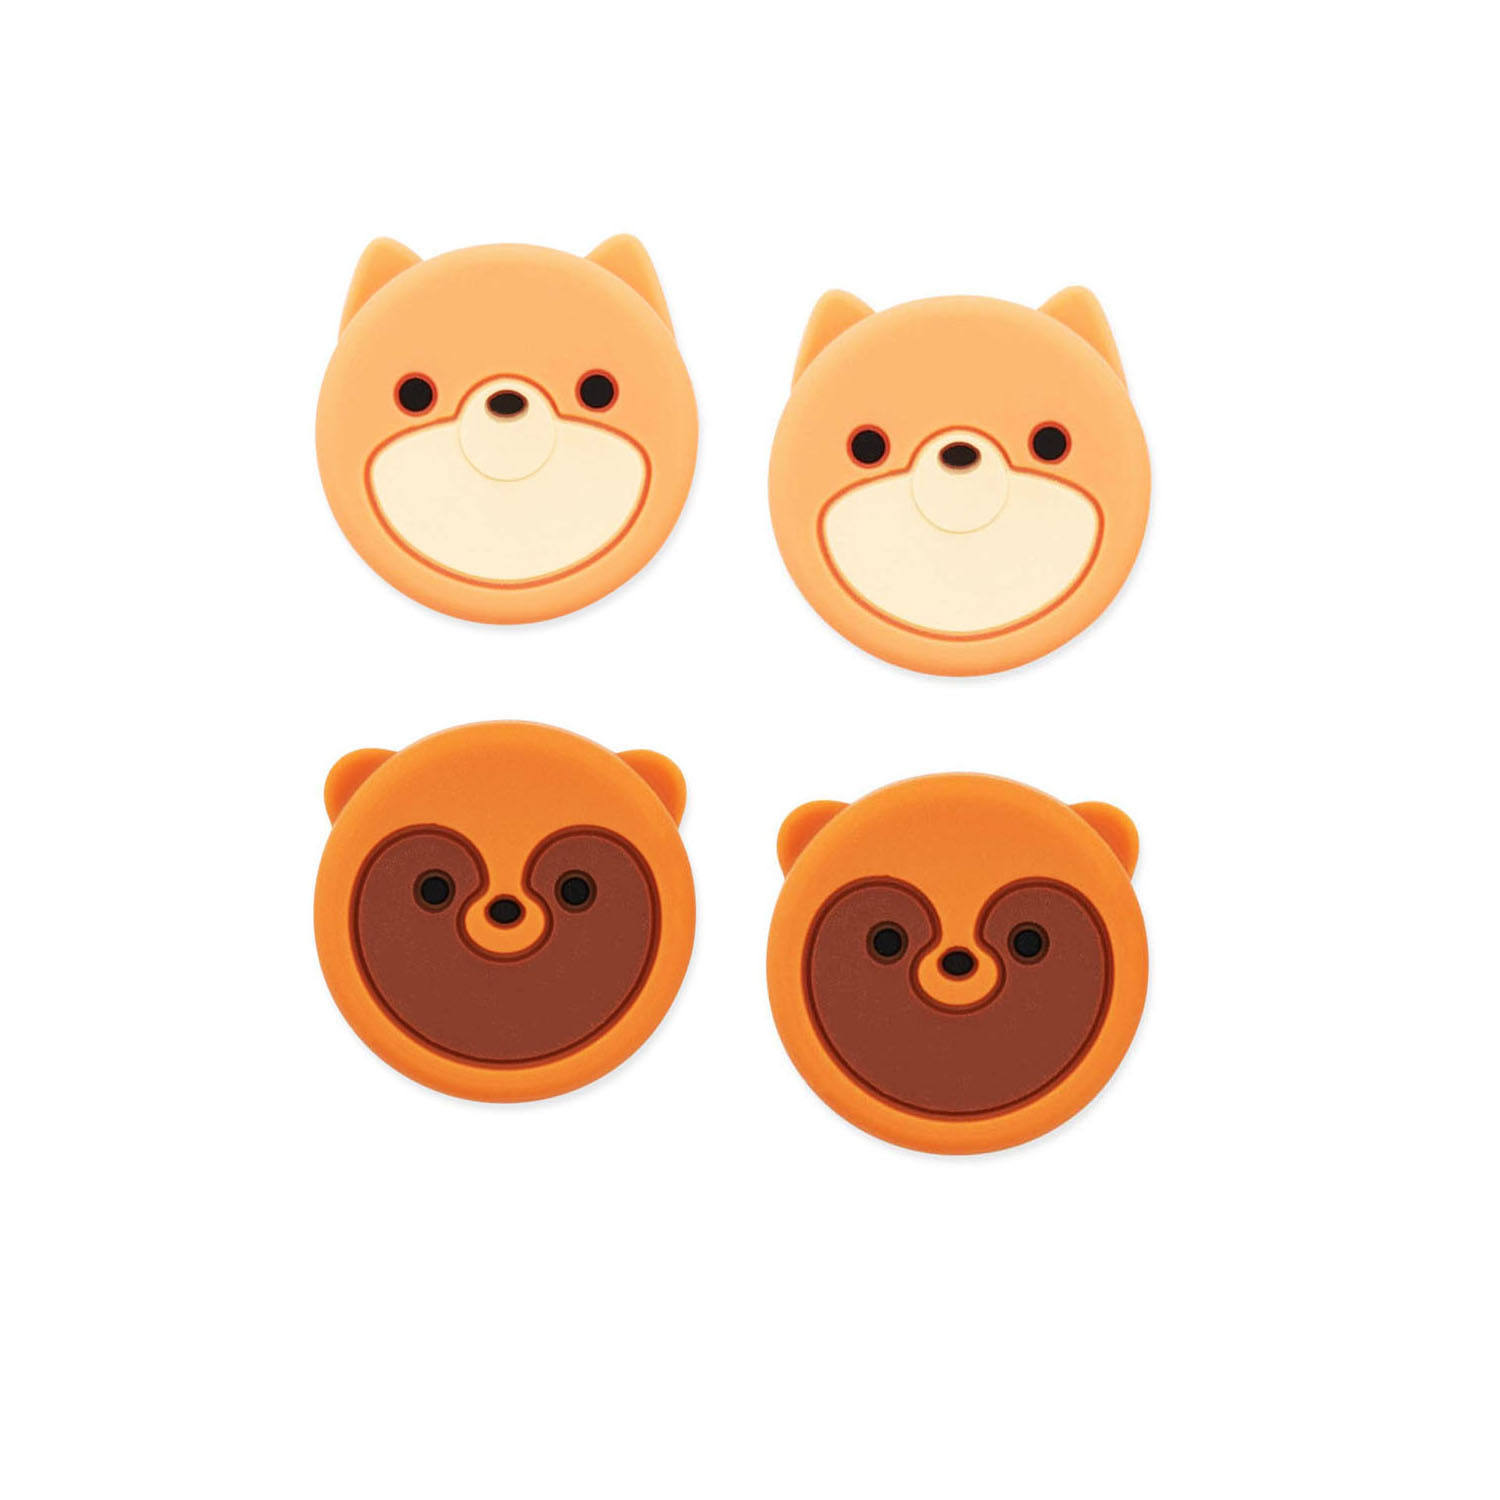 GeekShare Cute Animal Thumb Grip Cover For Nintendo Switch & Switch Lite Soft Silicone Joystick Cover ( Fox & Civet)